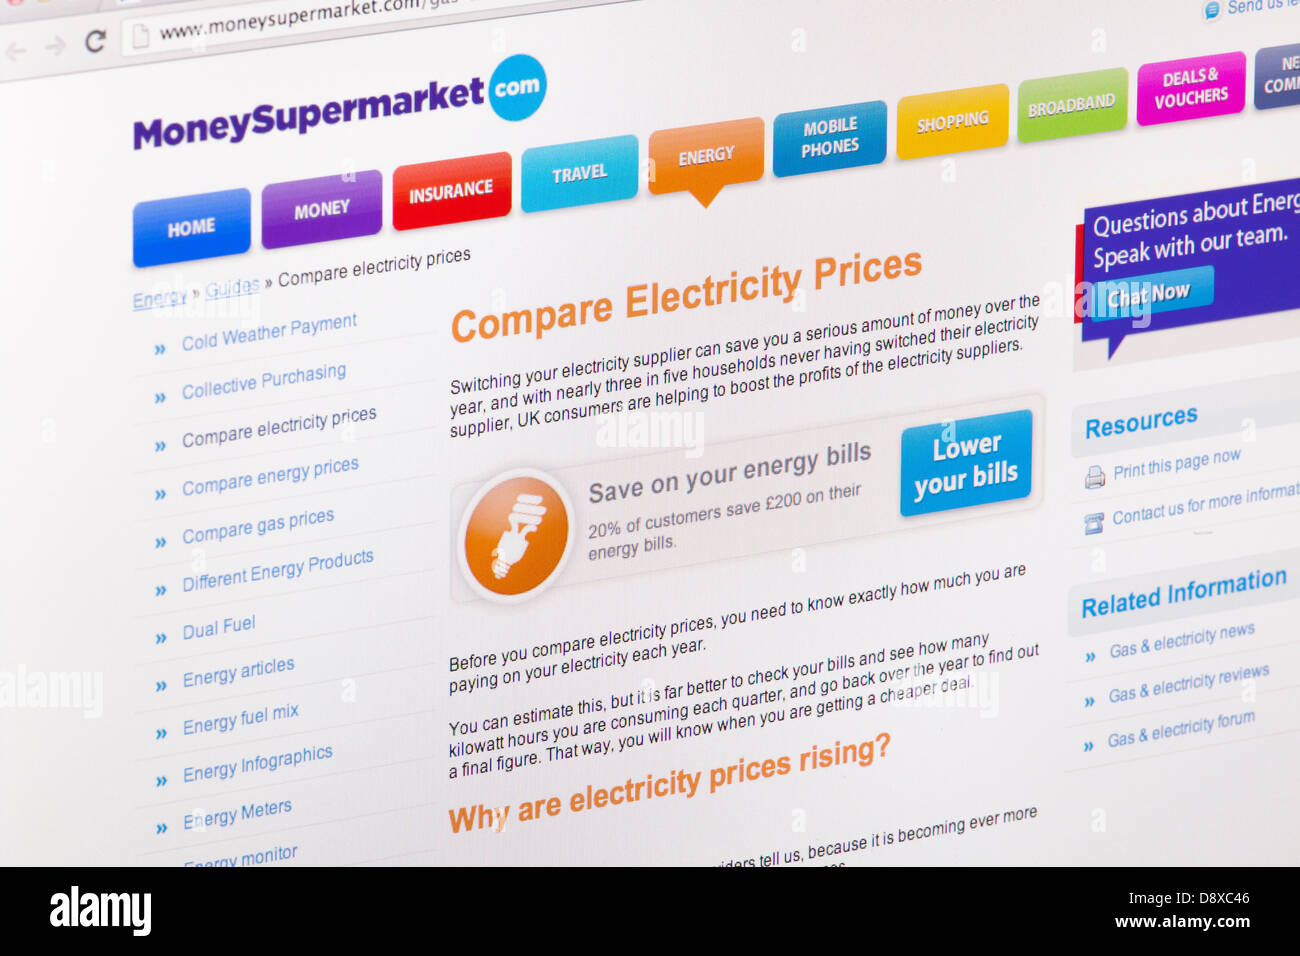 Money Supermarket compare energy prices online Website or web page on a laptop screen or computer monitor - Stock Image